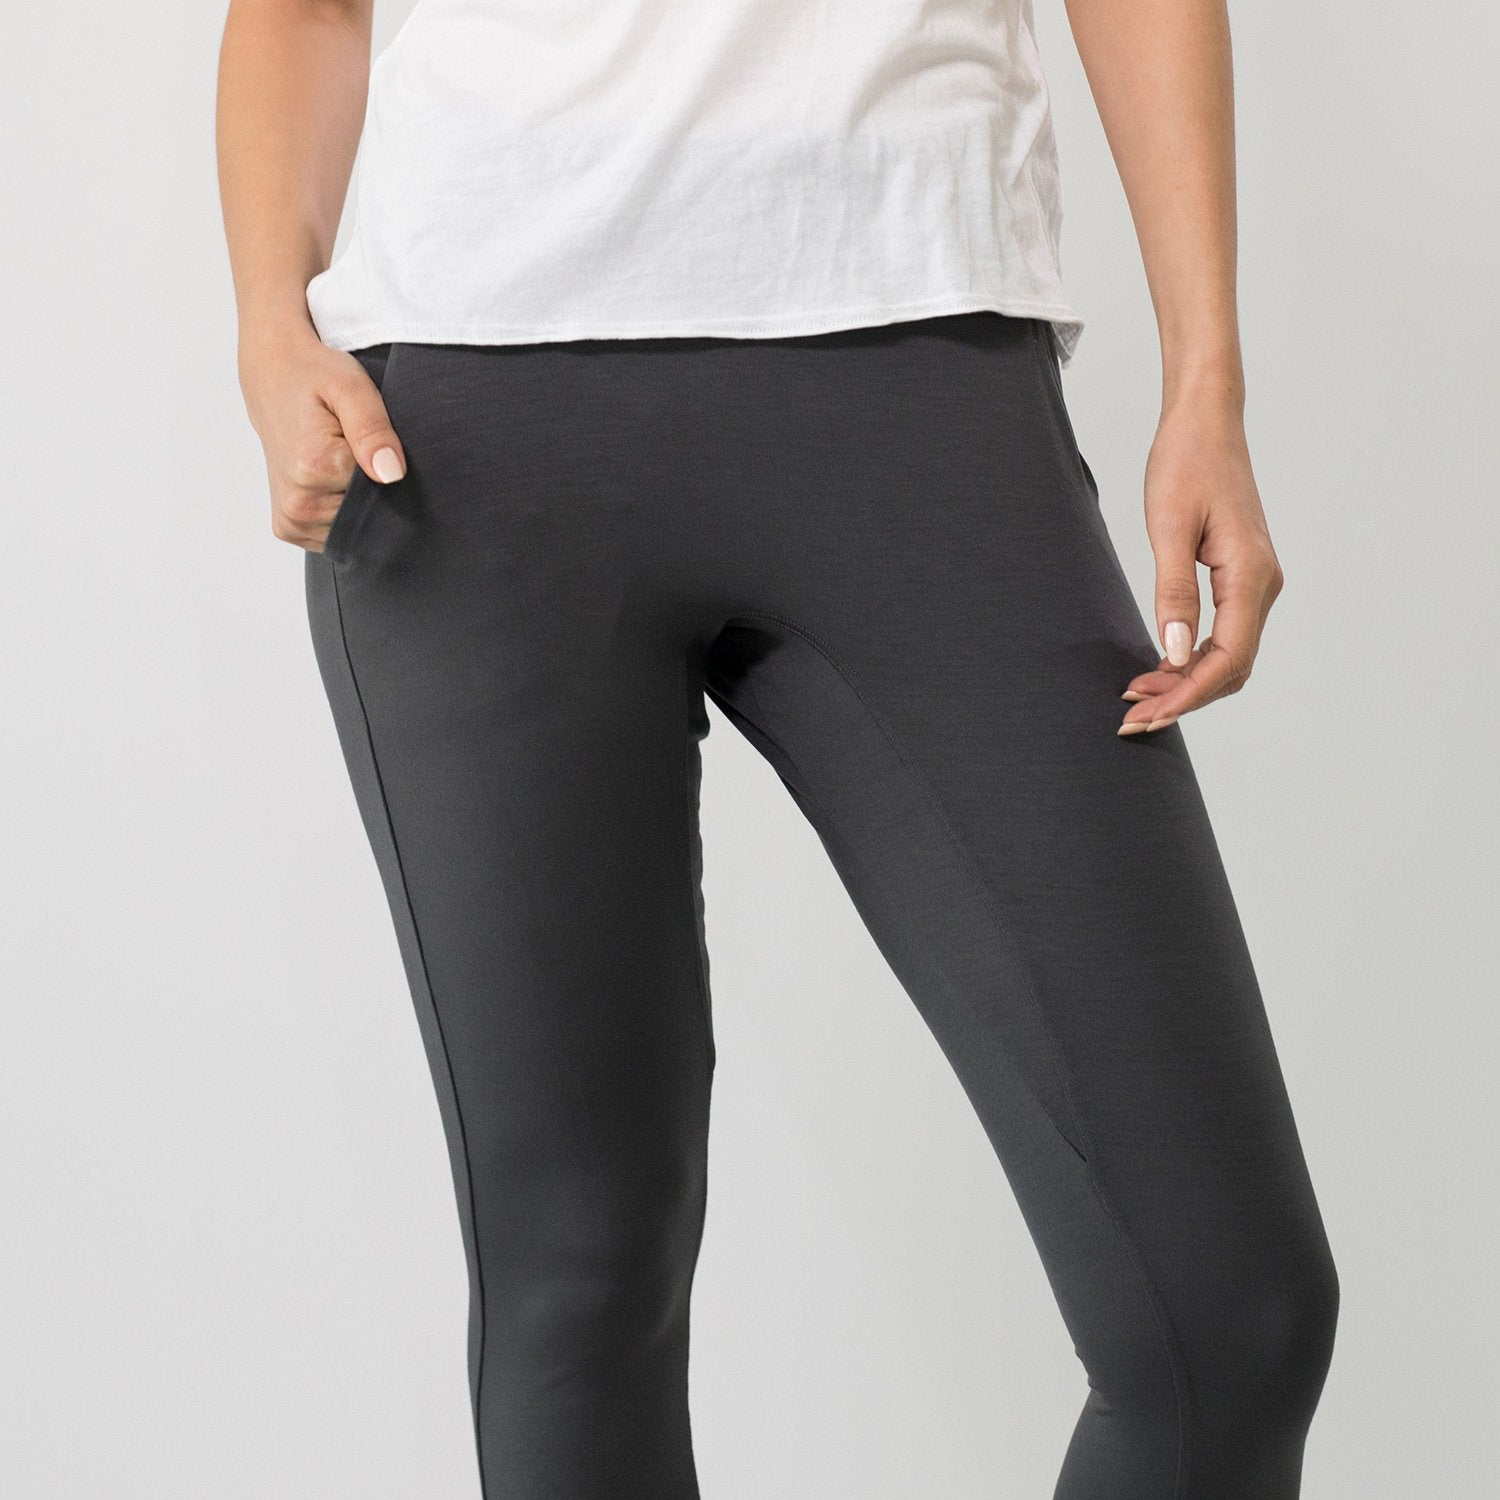 Siro Pocket Legging